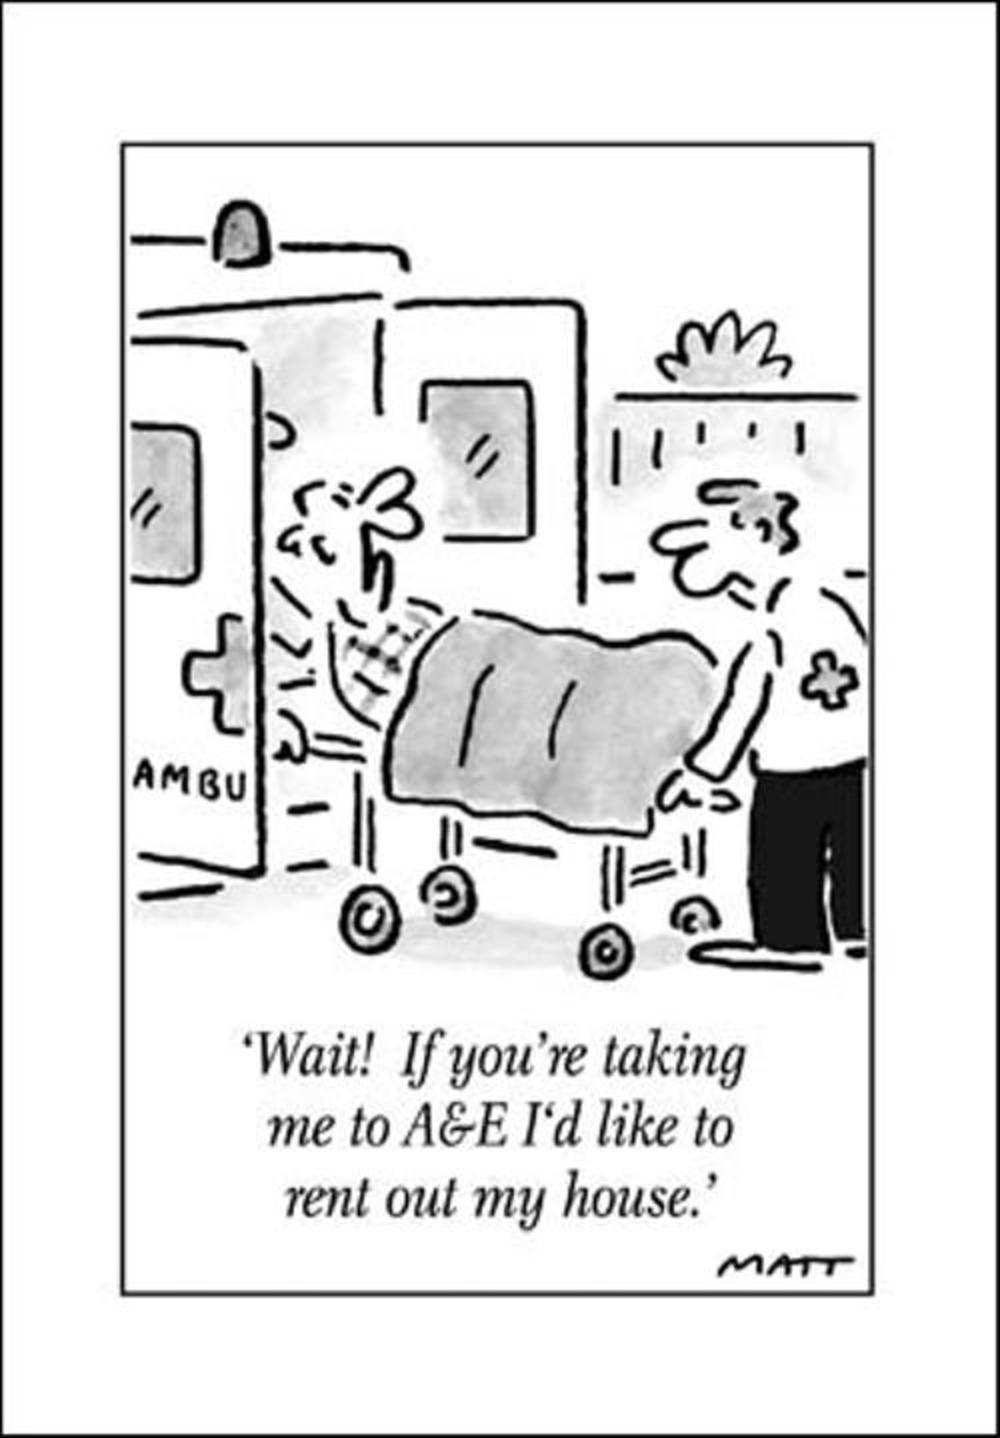 A&E Funny Matt Greeting Card